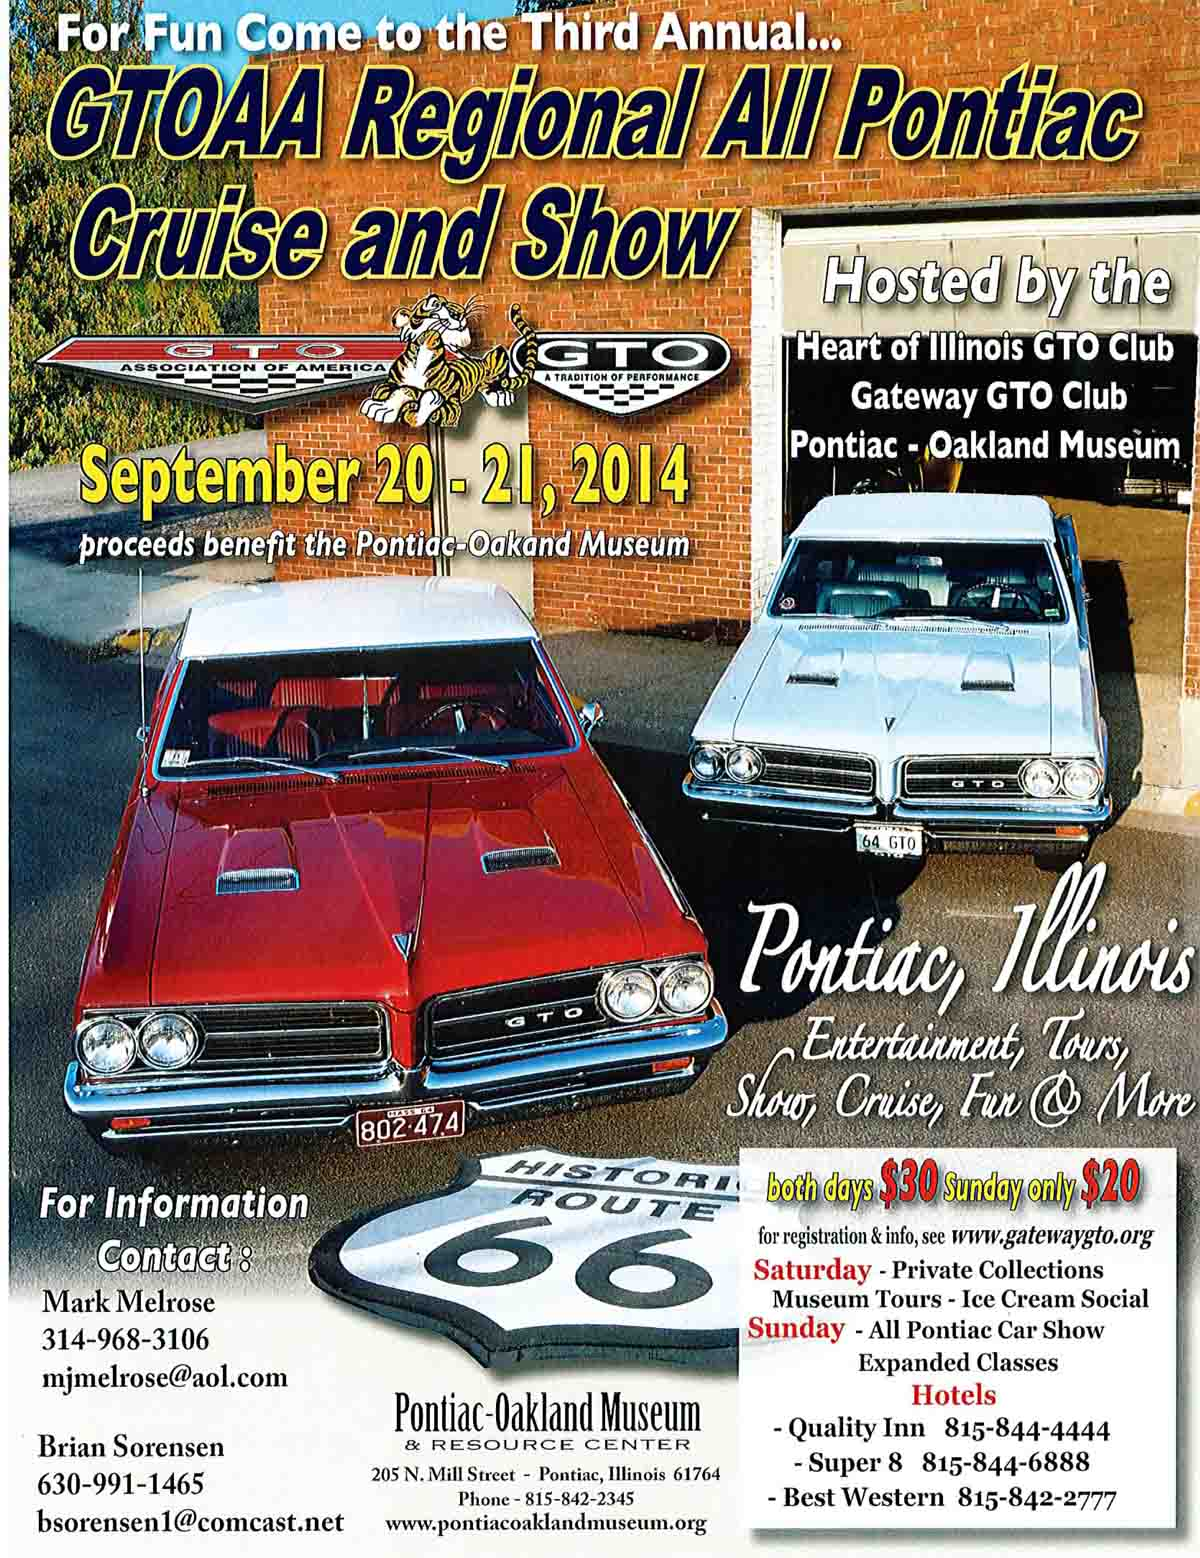 Pontiac IL Official Website - Oakland car show